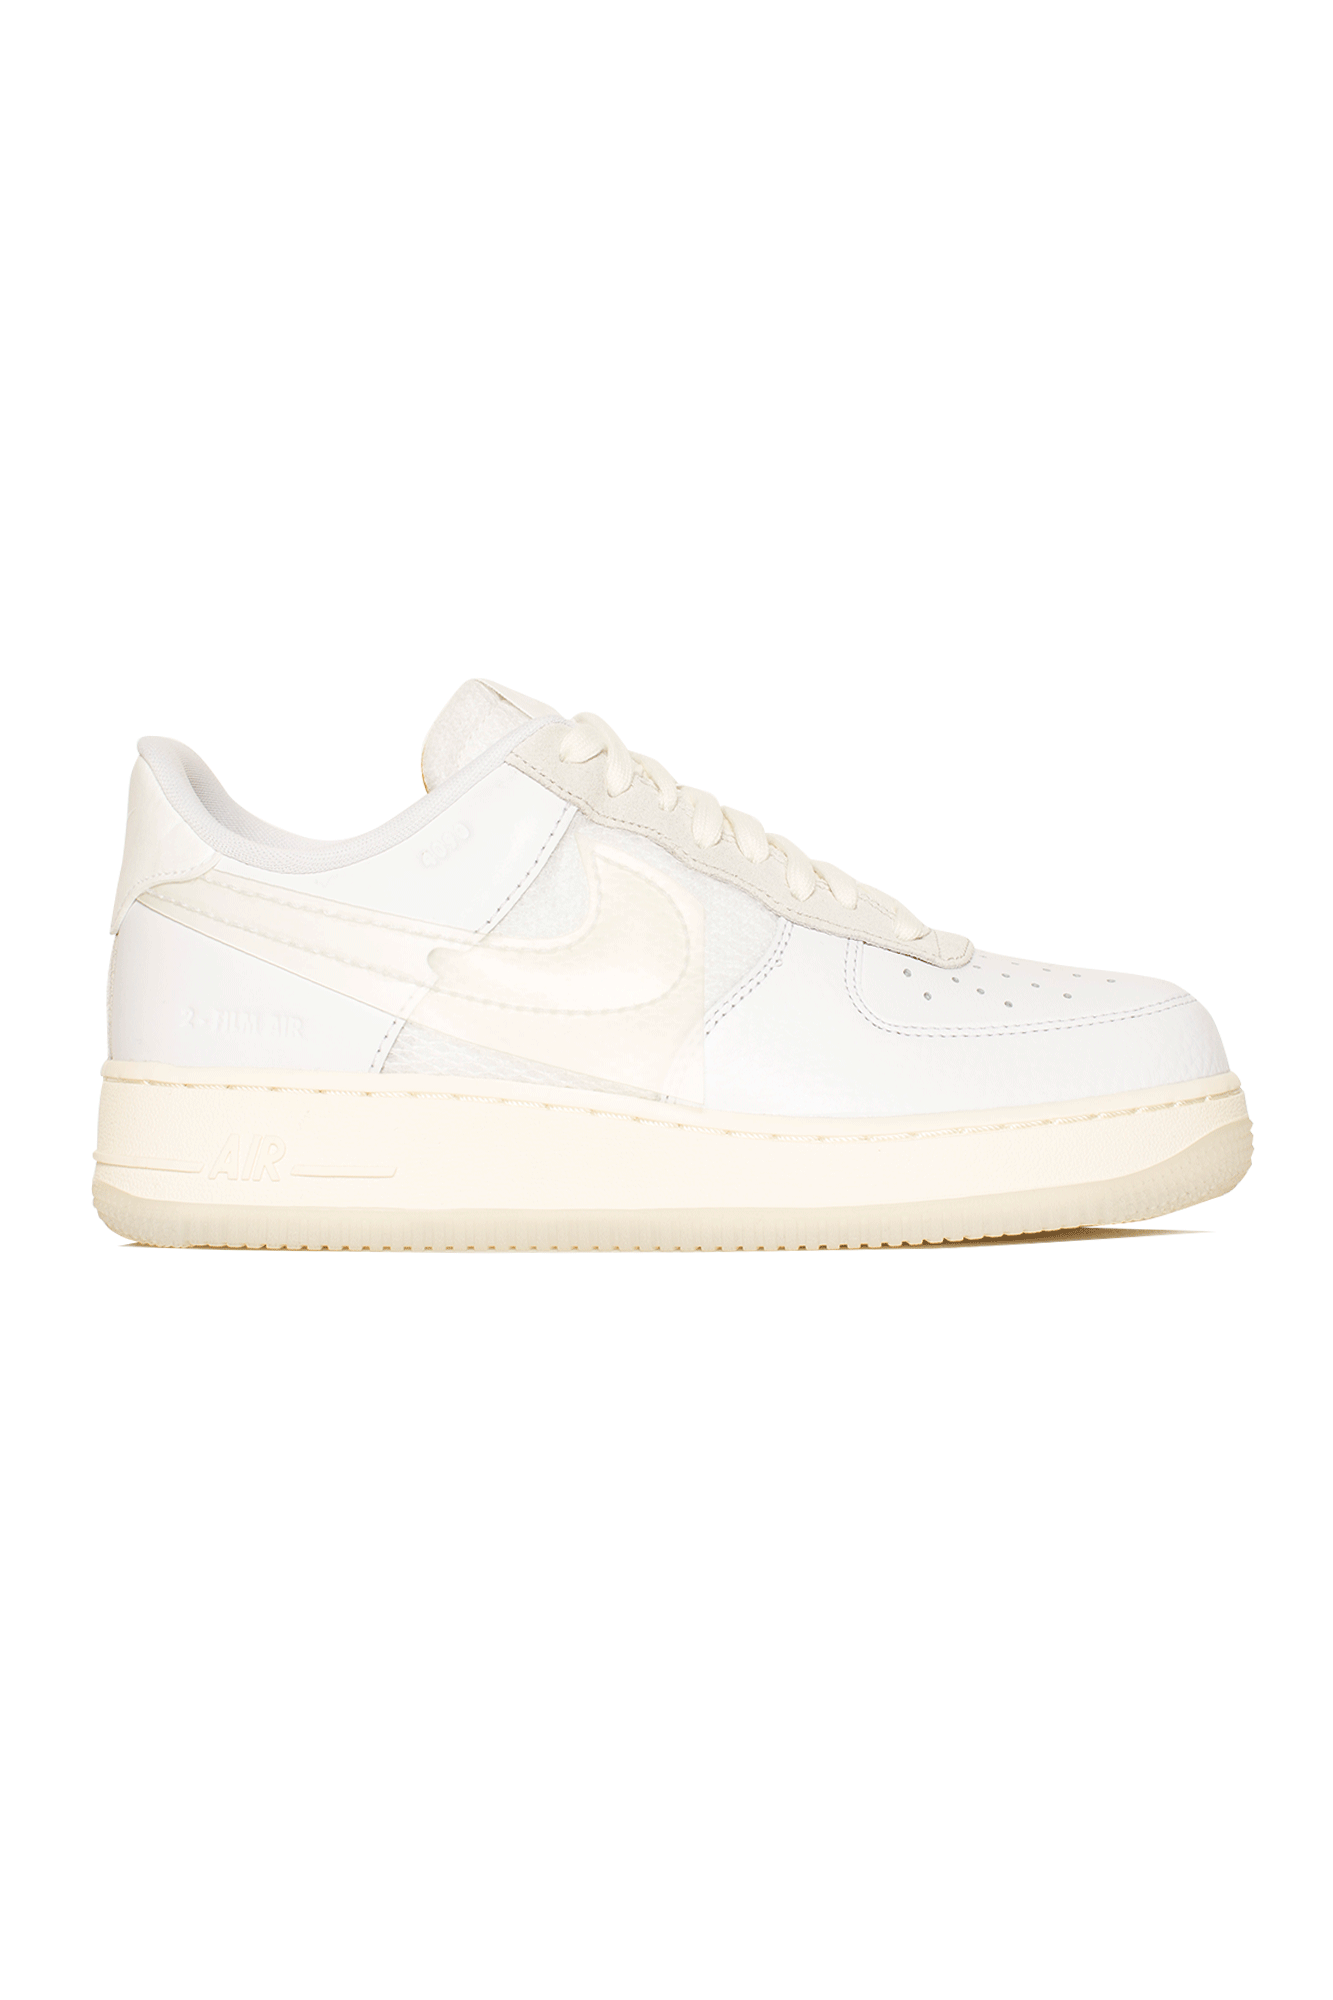 Nike Sneakers Air Force1 LV8 Bianco CV3040-#000#100#6 - One Block Down